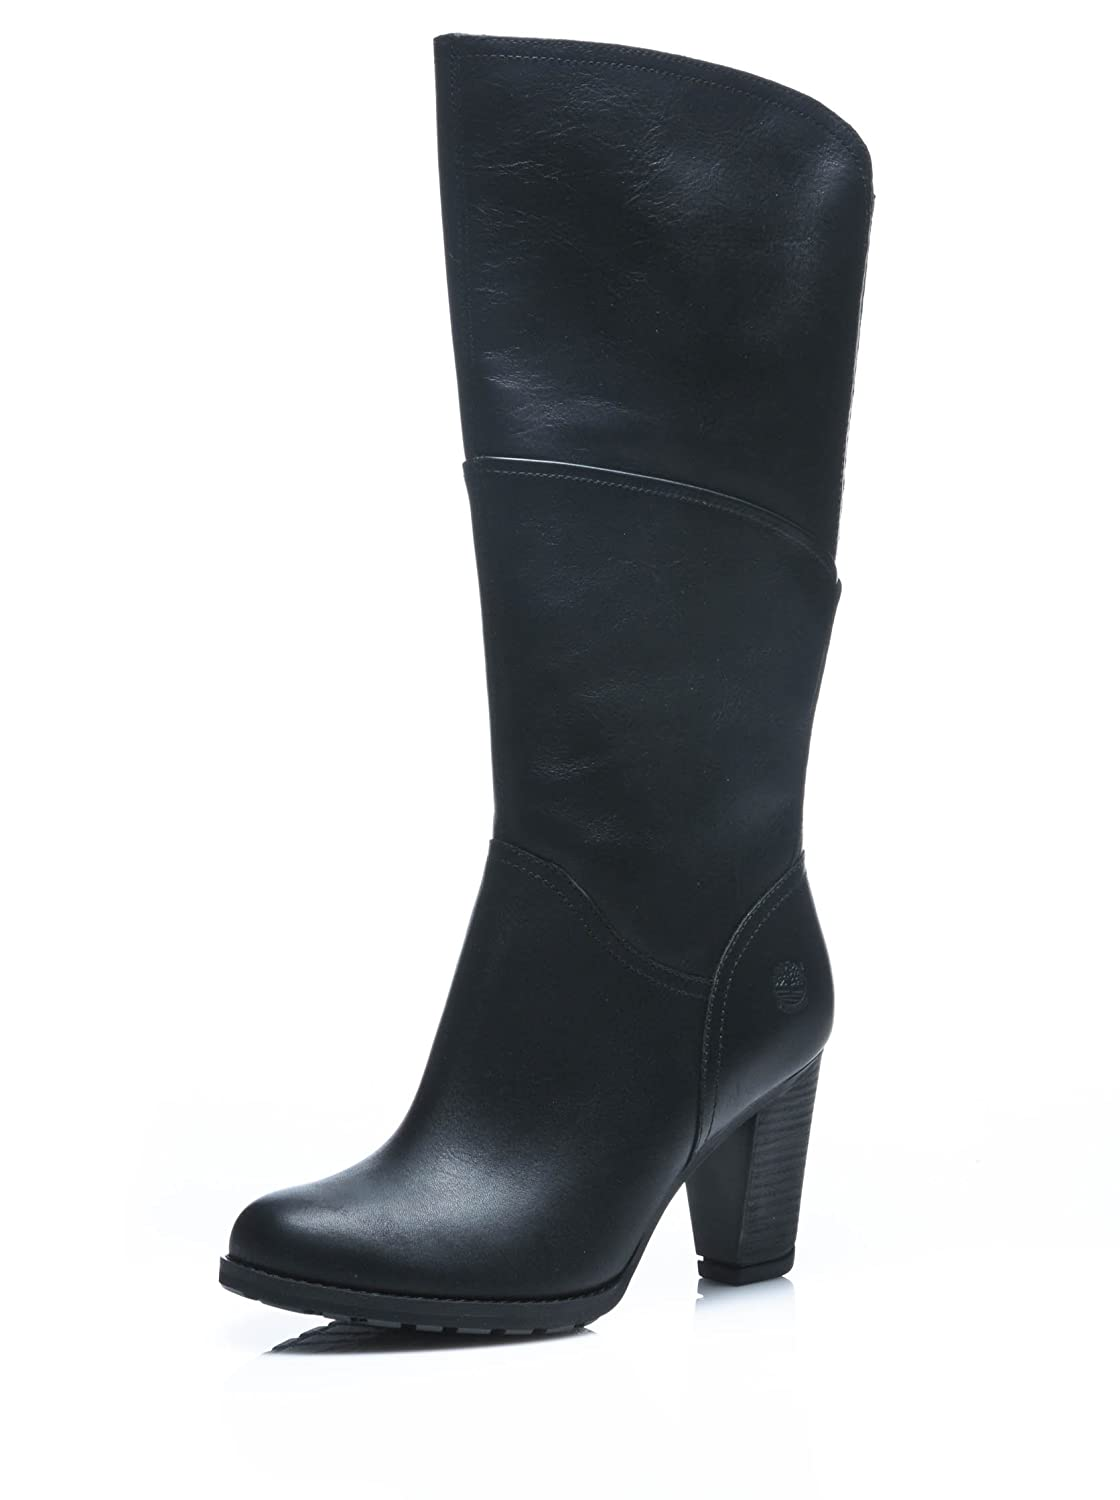 2f08c8b0d75 Timberland New Ladies Womens Black Stratham Height High Leg Boots. - Black  - UK Size 7  Amazon.co.uk  Shoes   Bags